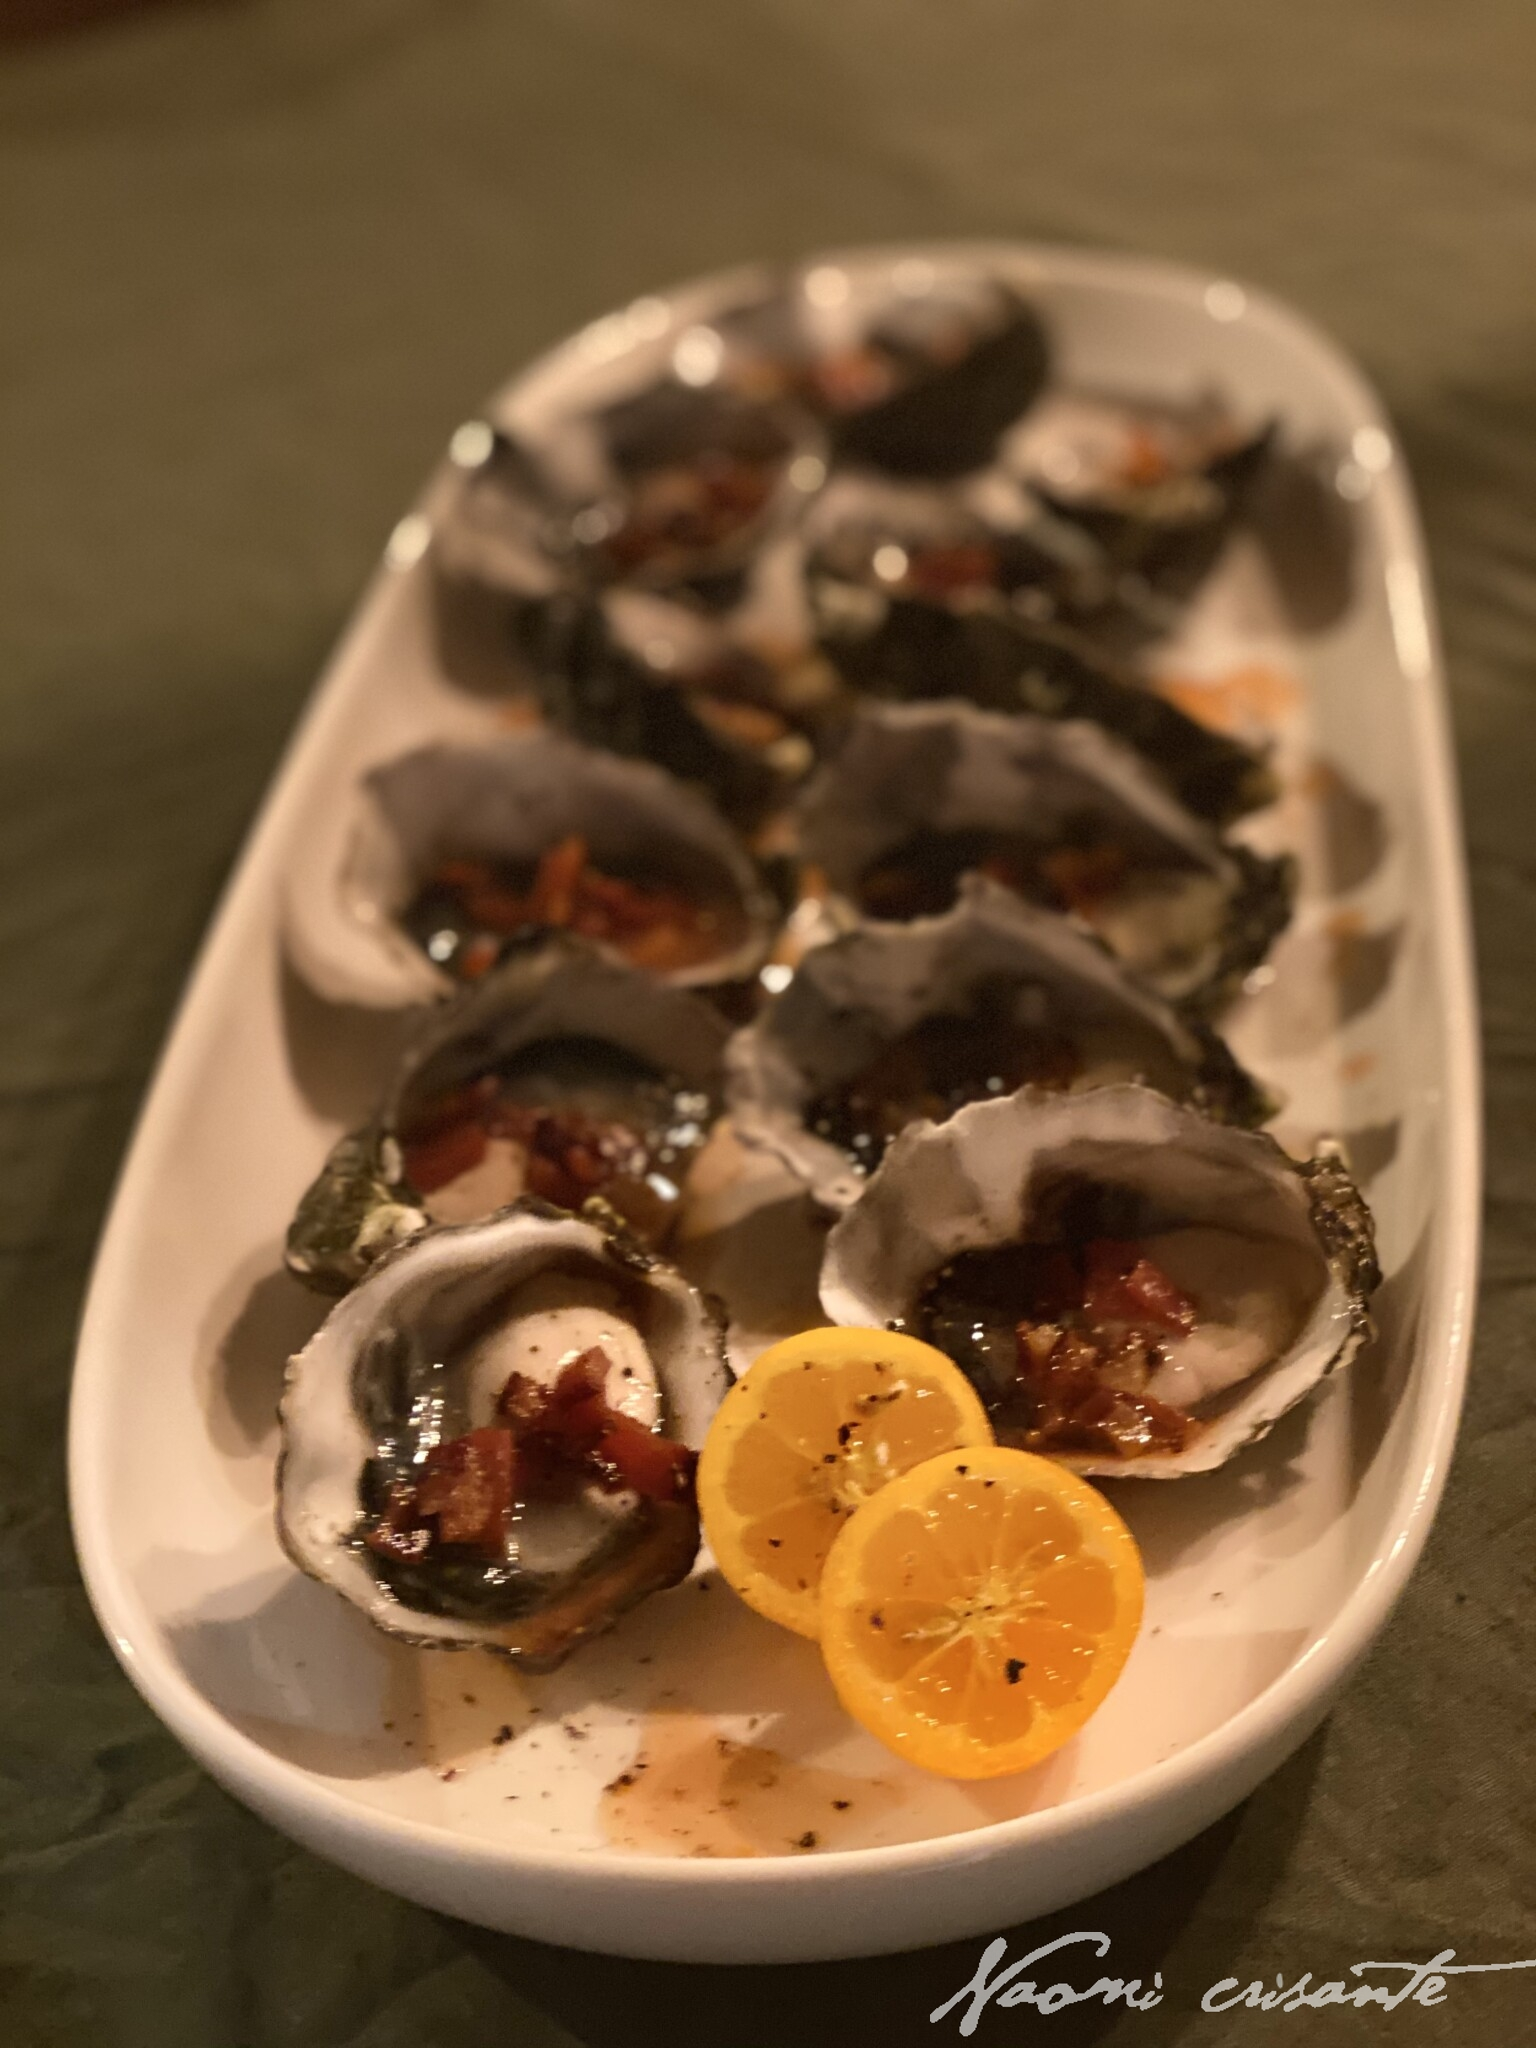 Oysters Americano